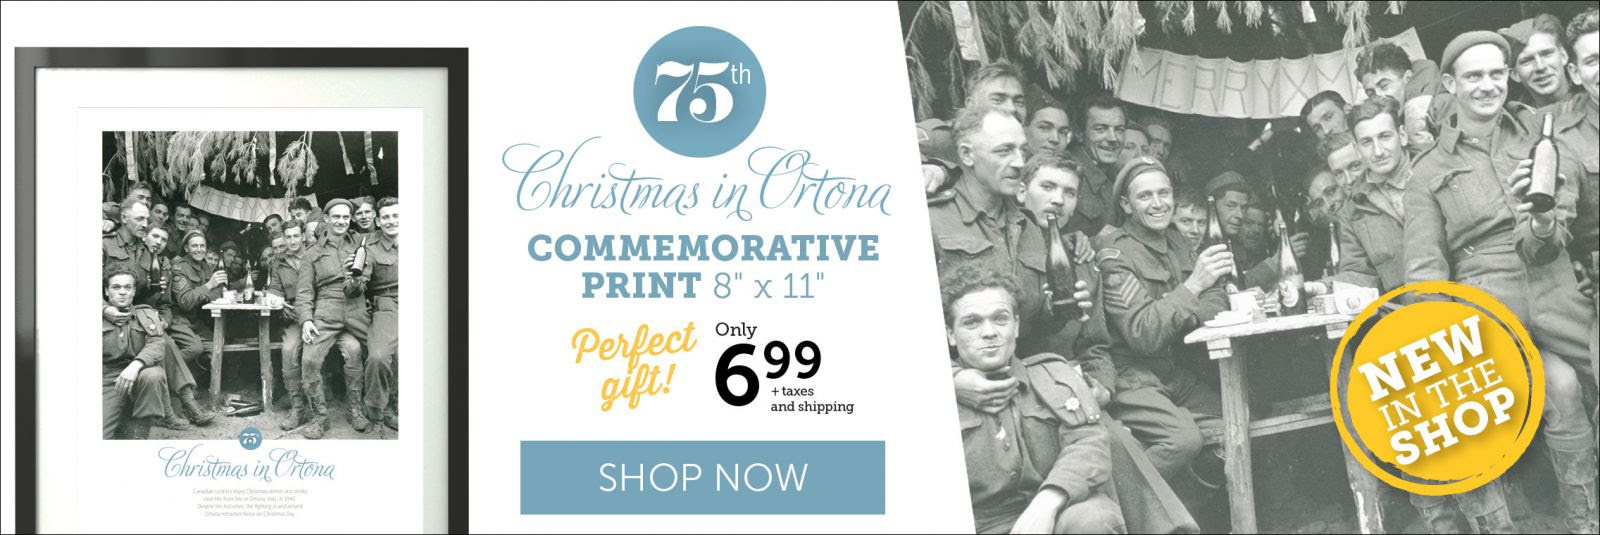 Christmas in Ortona Commemorative Print for only $6.99